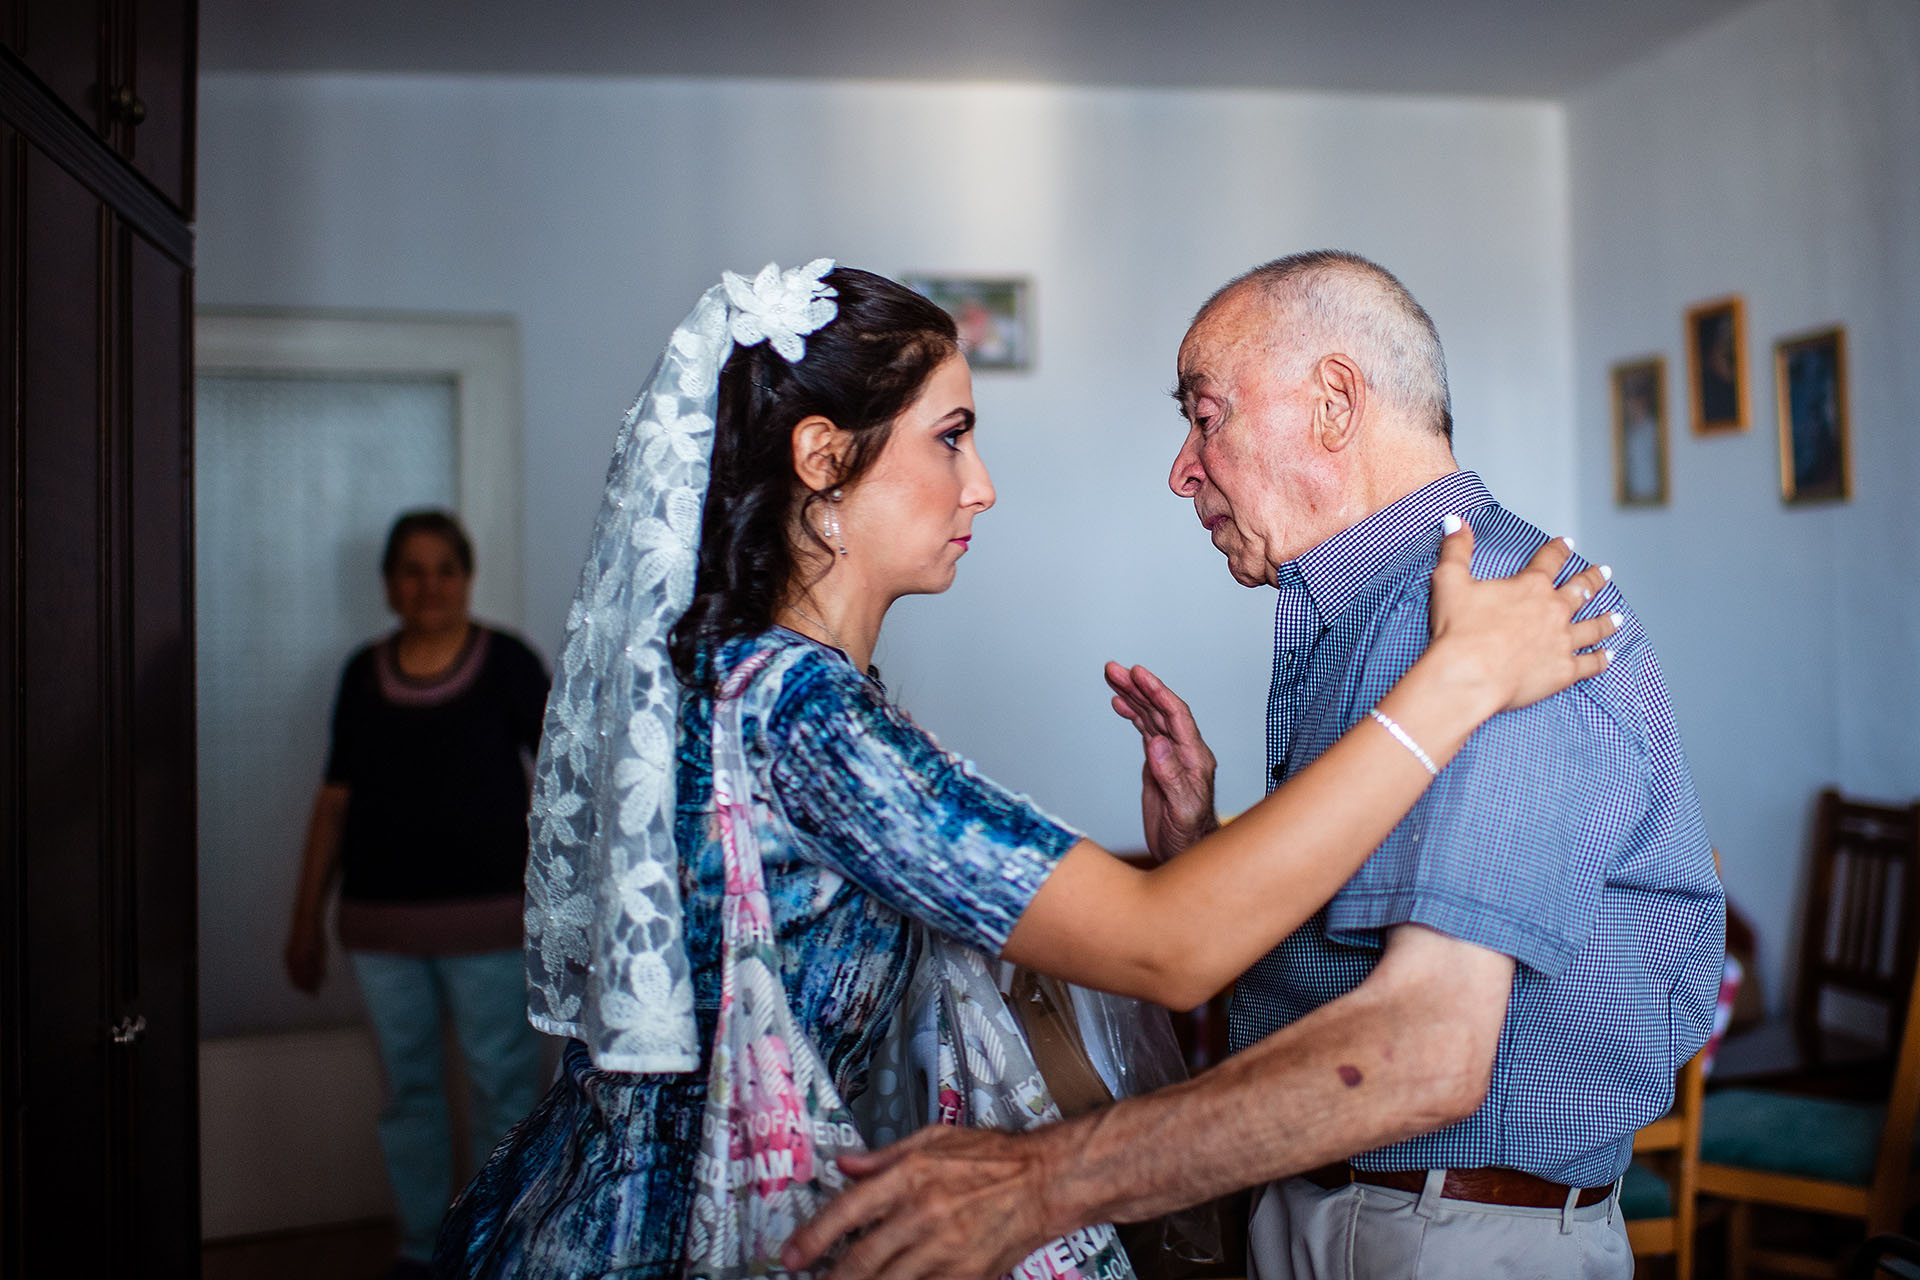 Club Horizont, Varna, Bulgaria Elopement Bride Photo | The bride and her grandfather share an emotional moment before the ceremony